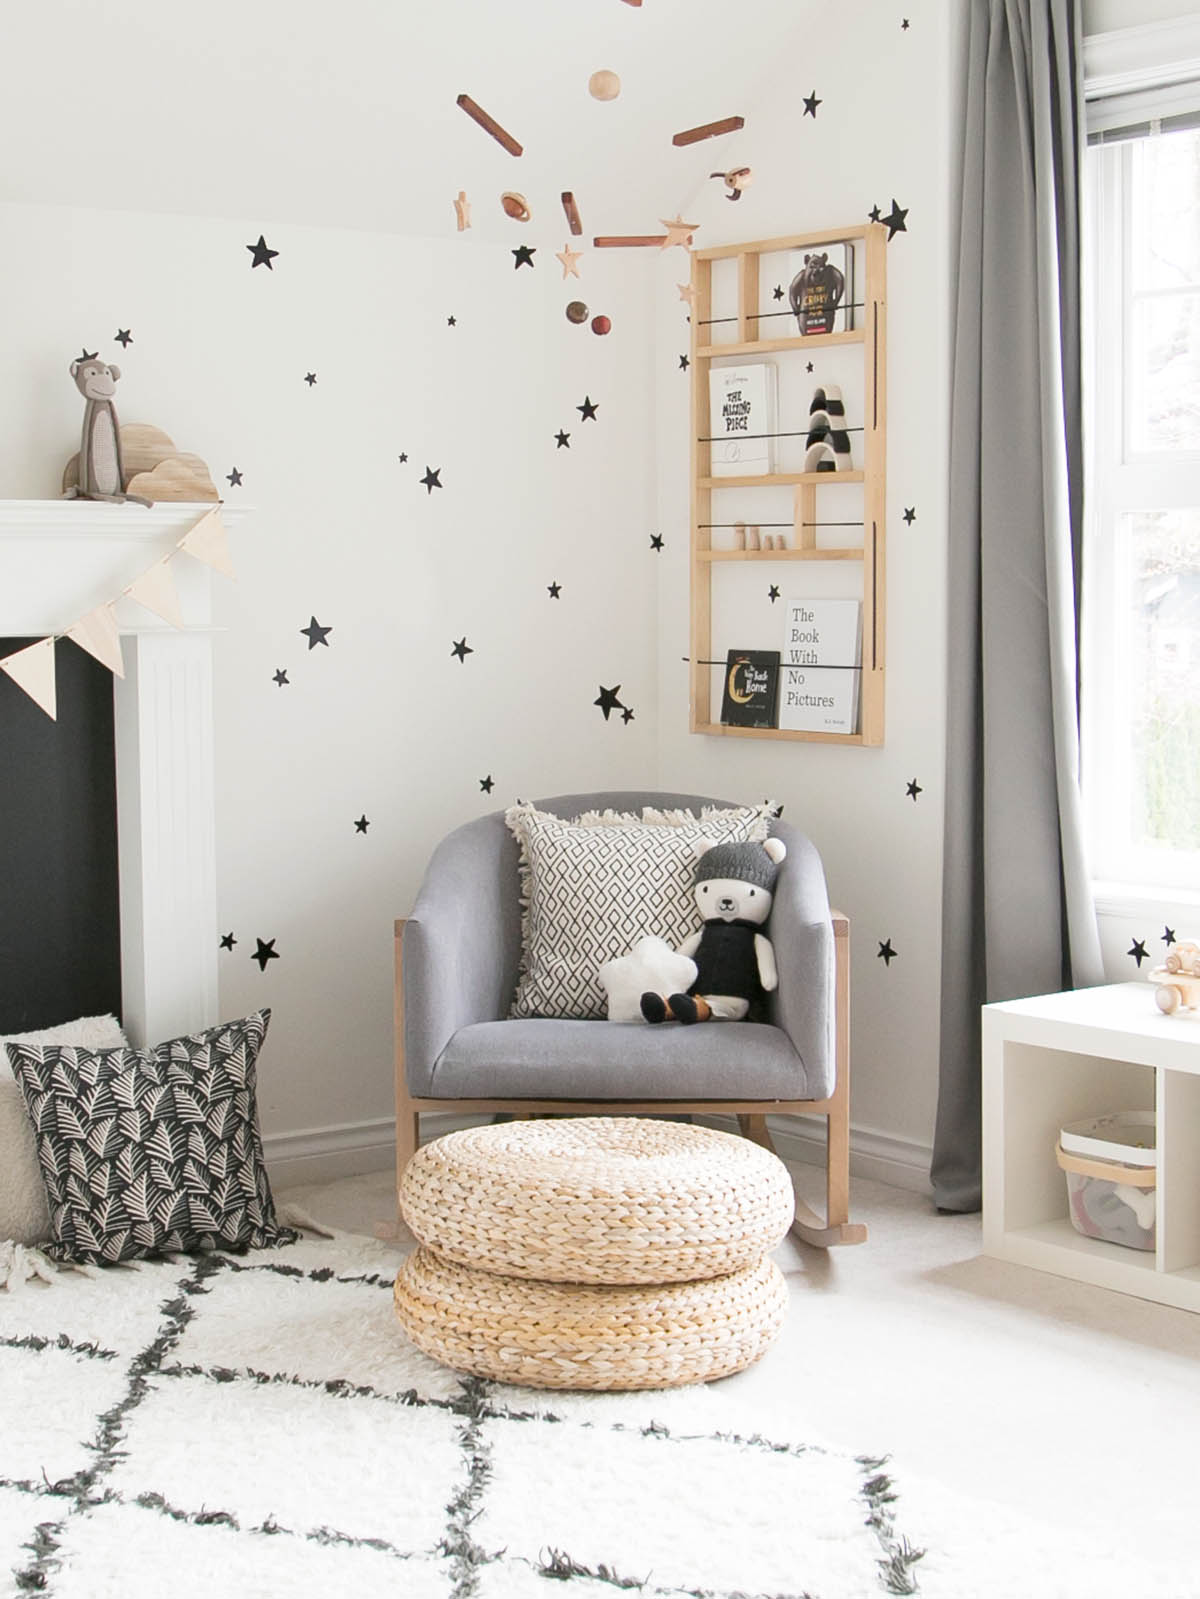 Miles room reading corner designed by Winter Daisy Interiors